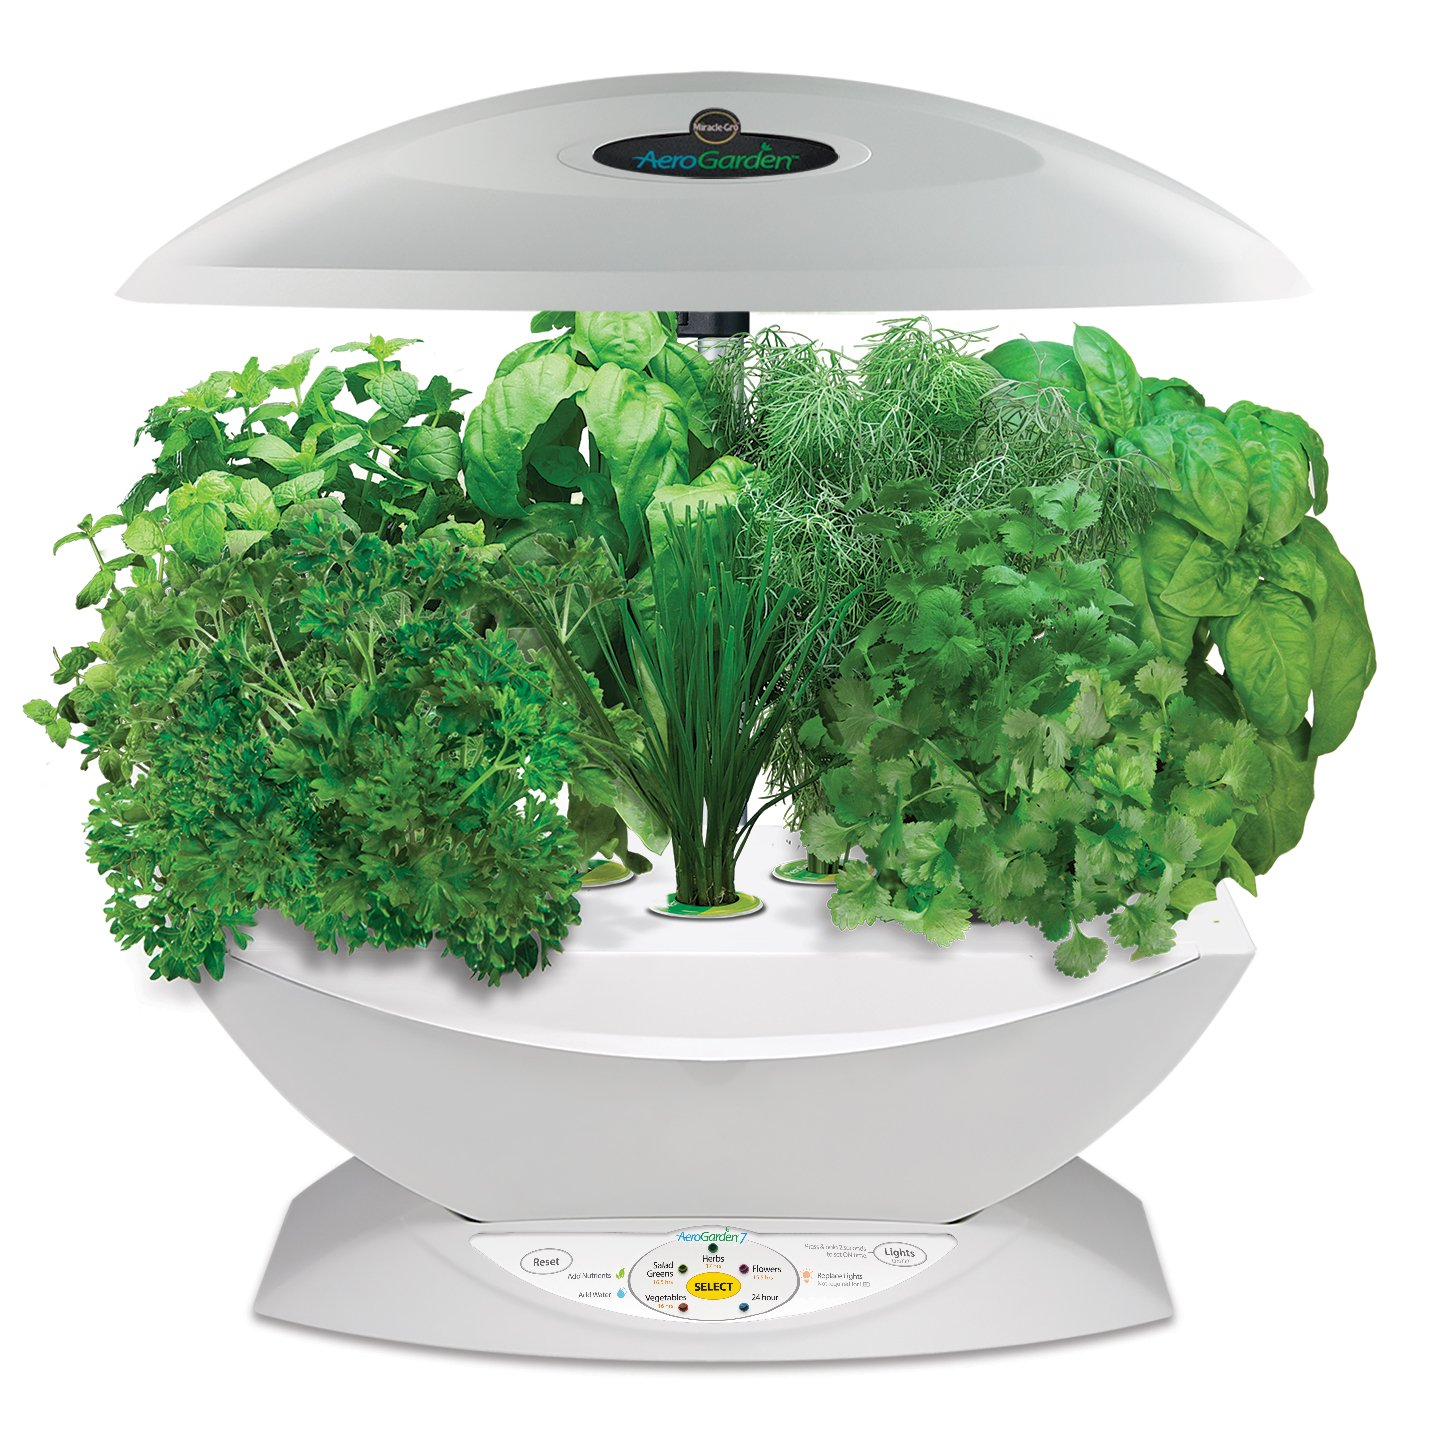 Herb Kits For Indoors: Miracle Gro Aerogarden 7 Indoor Garden With Gourmet Herb